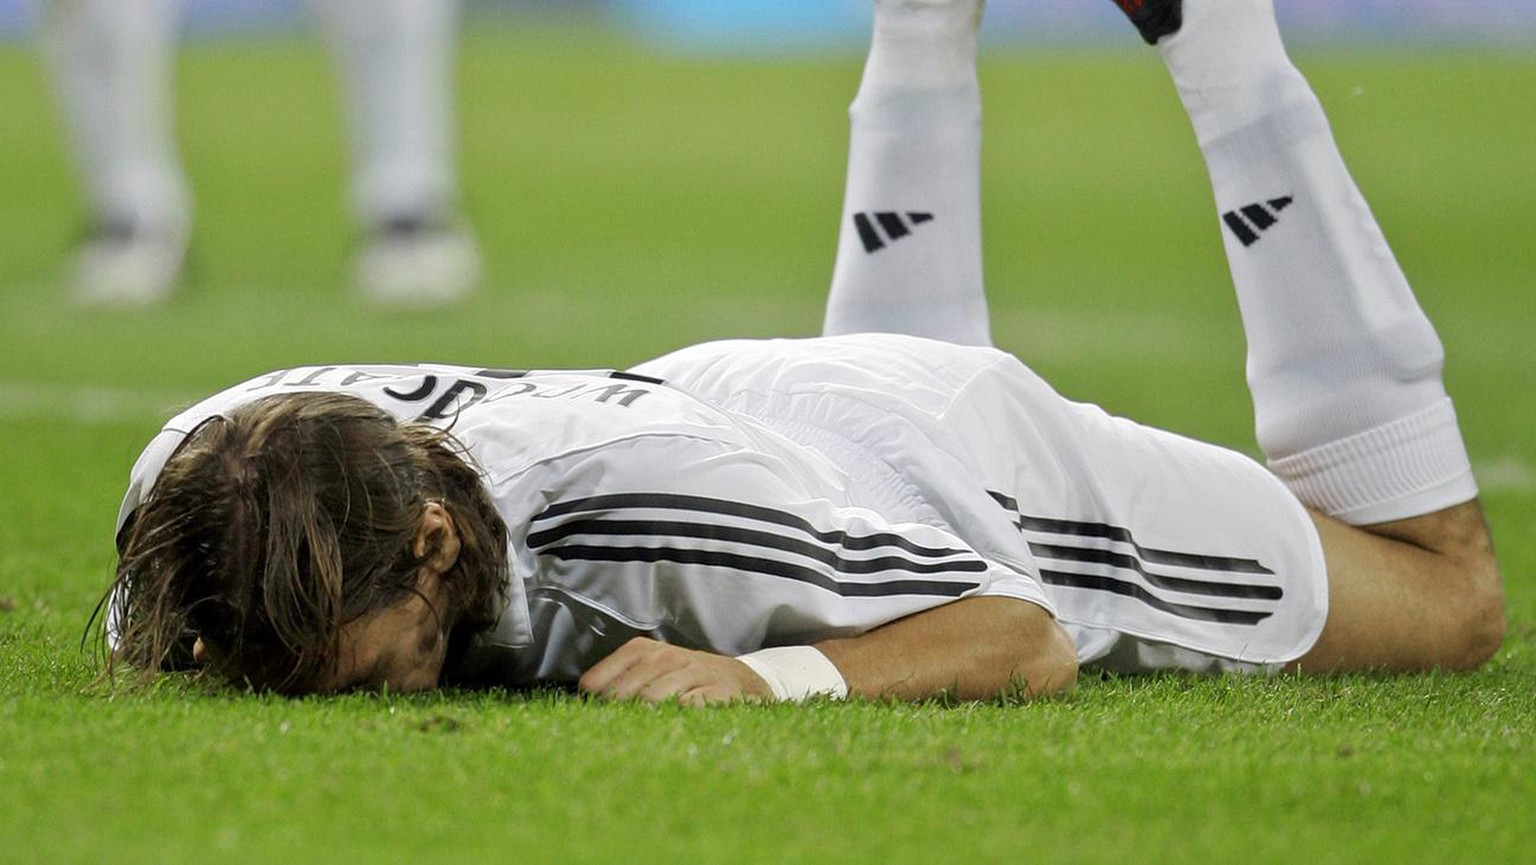 Real Madrid English player Jonathan Woodgate reacts after Athletic Bilbao scored during their Spanish league soccer match at the Bernabeu stadium in Madrid Thursday Sept. 22, 2005. (AP Photo/Bernat Armangue)